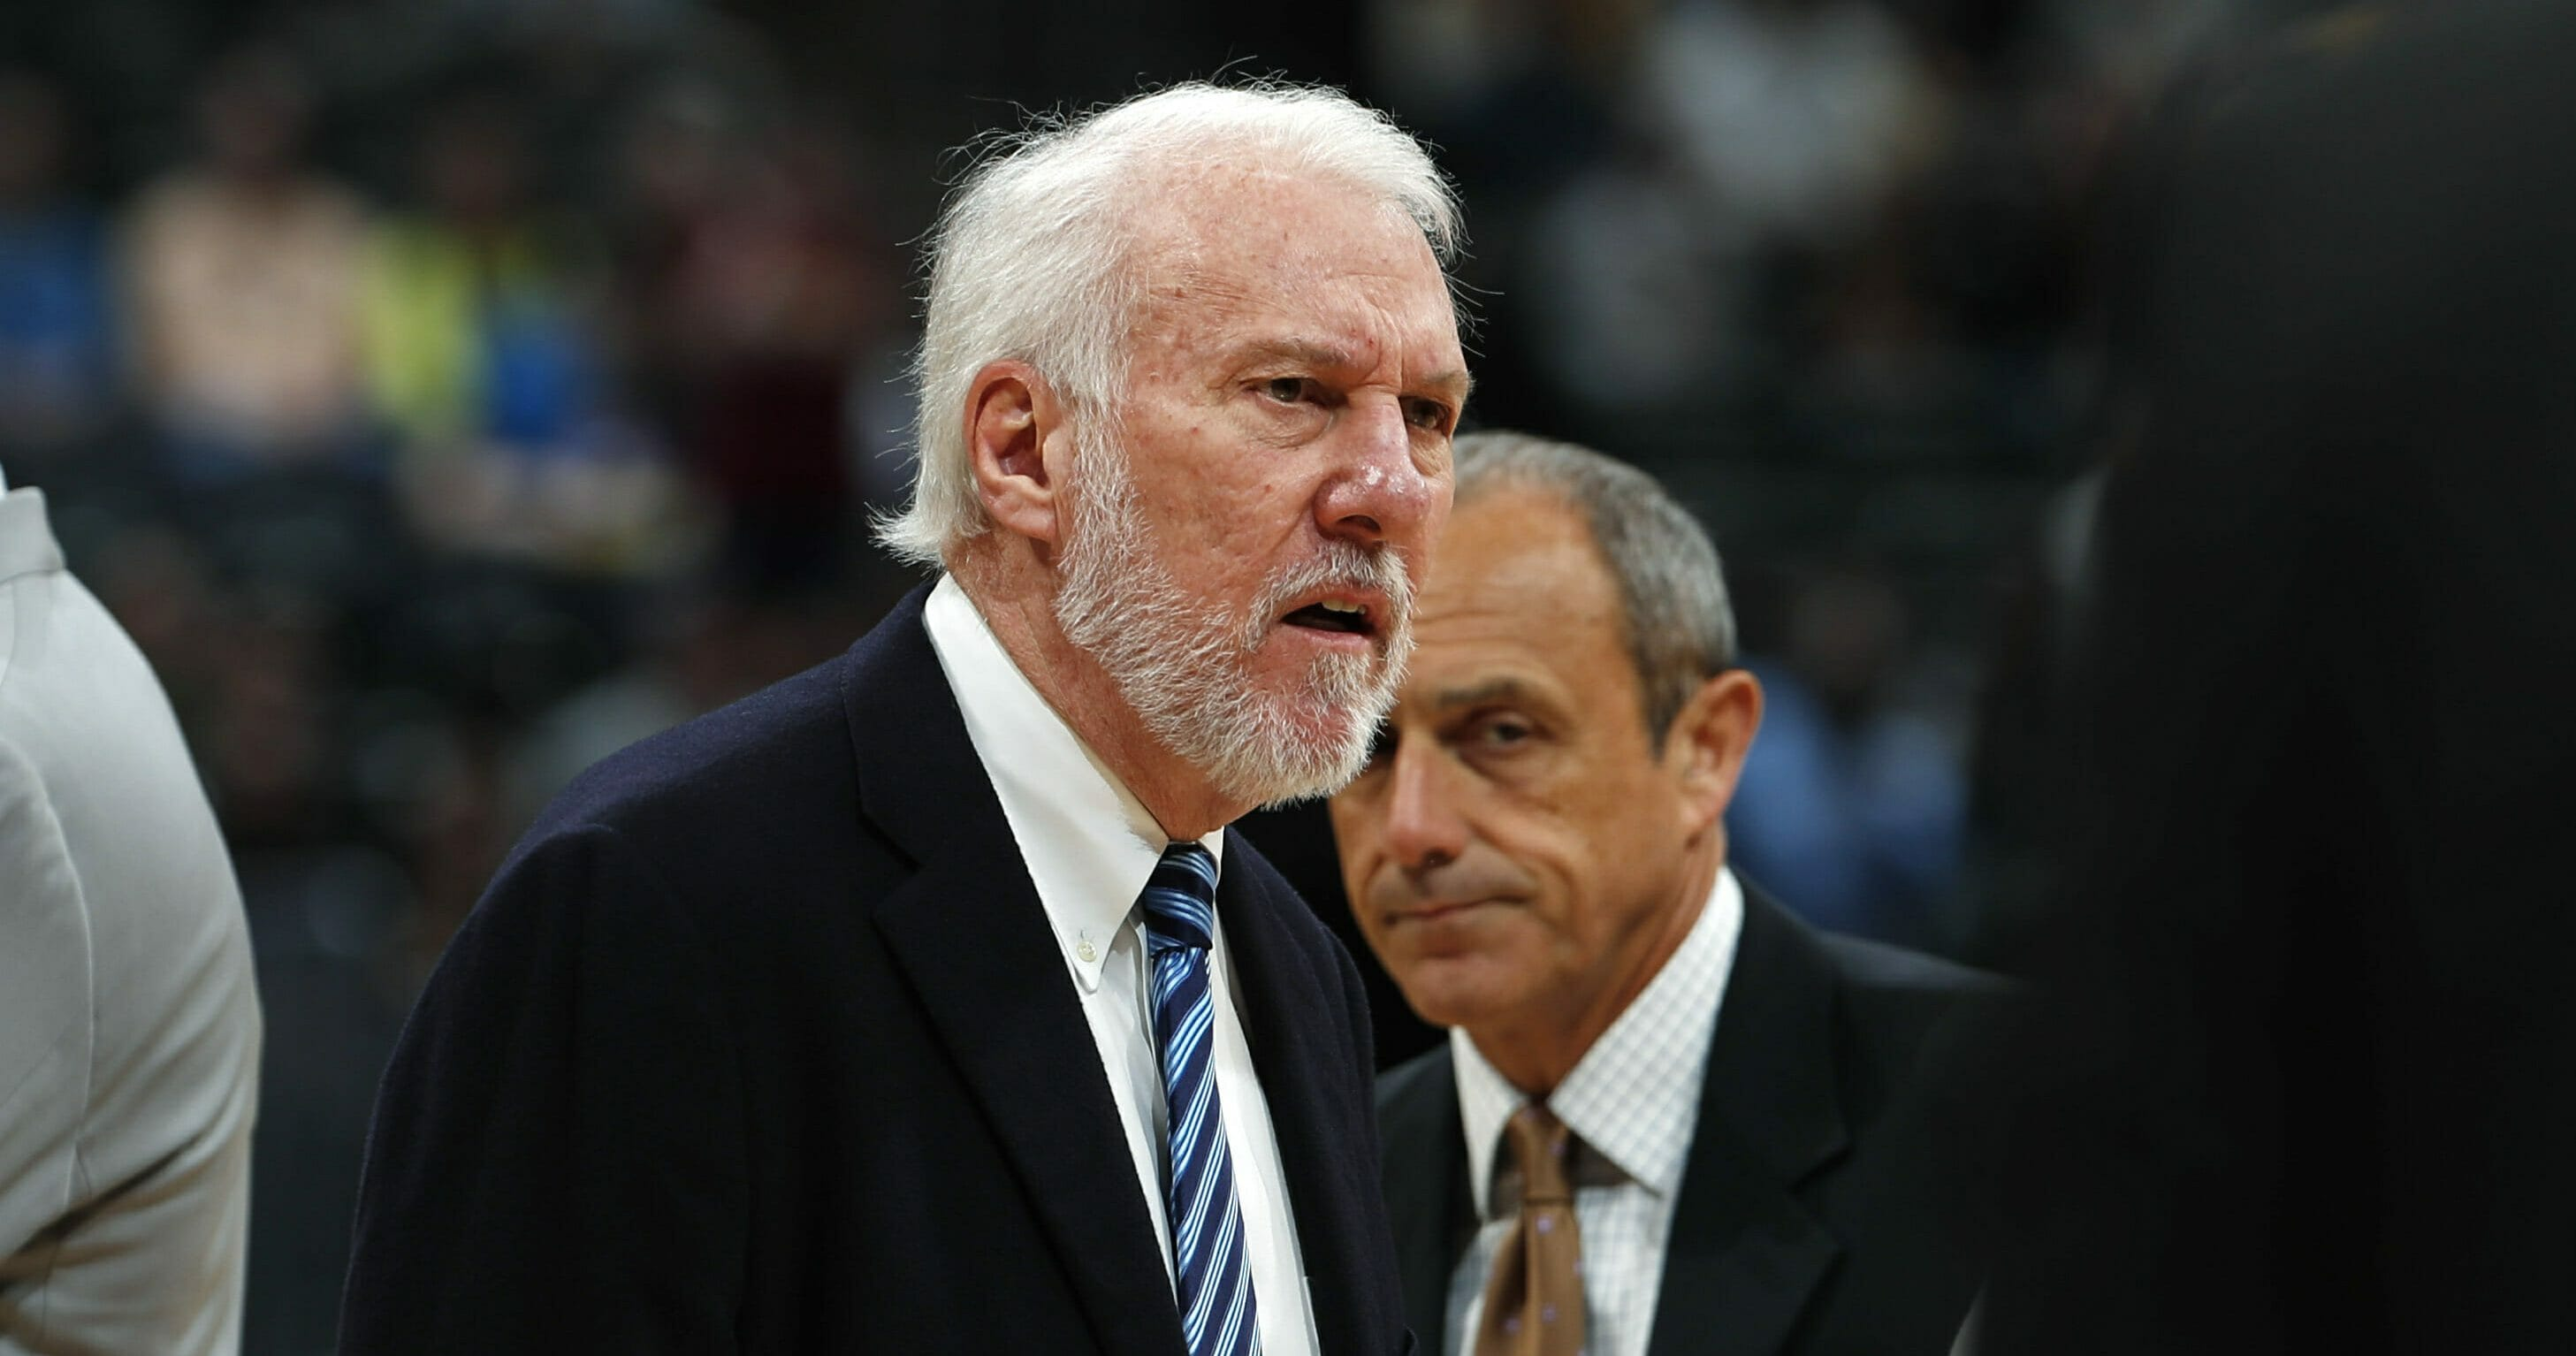 San Antonio Spurs head coach Gregg Popovich reacts after being ejected.